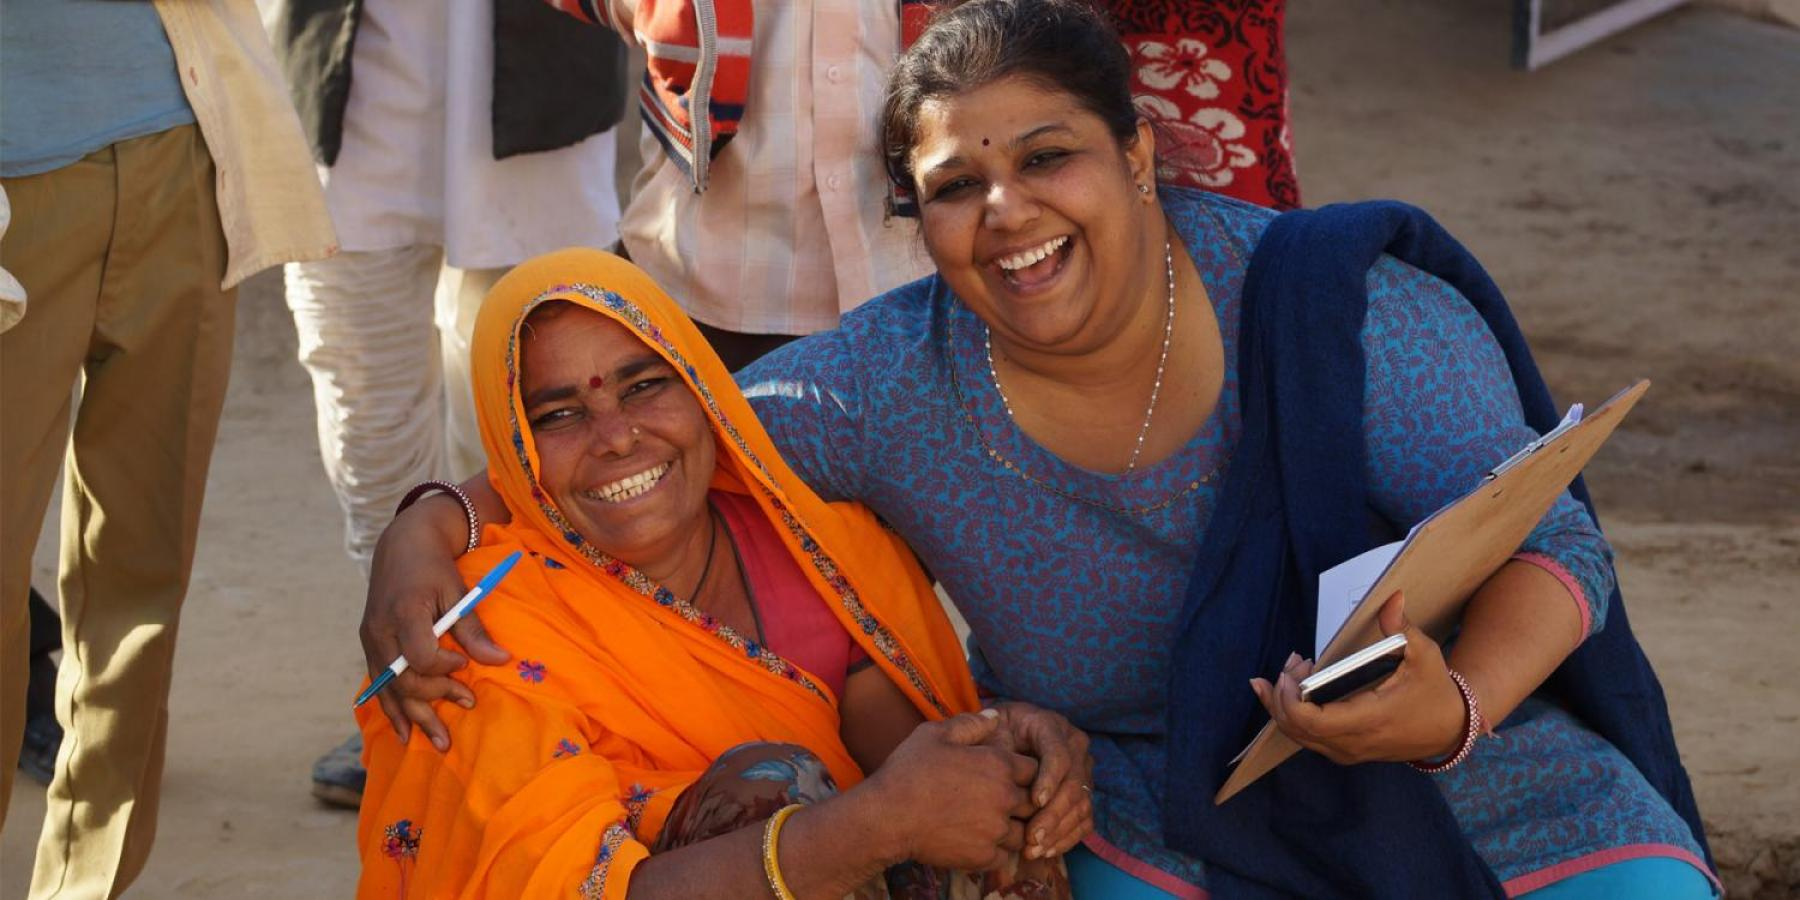 Women in India at a training session